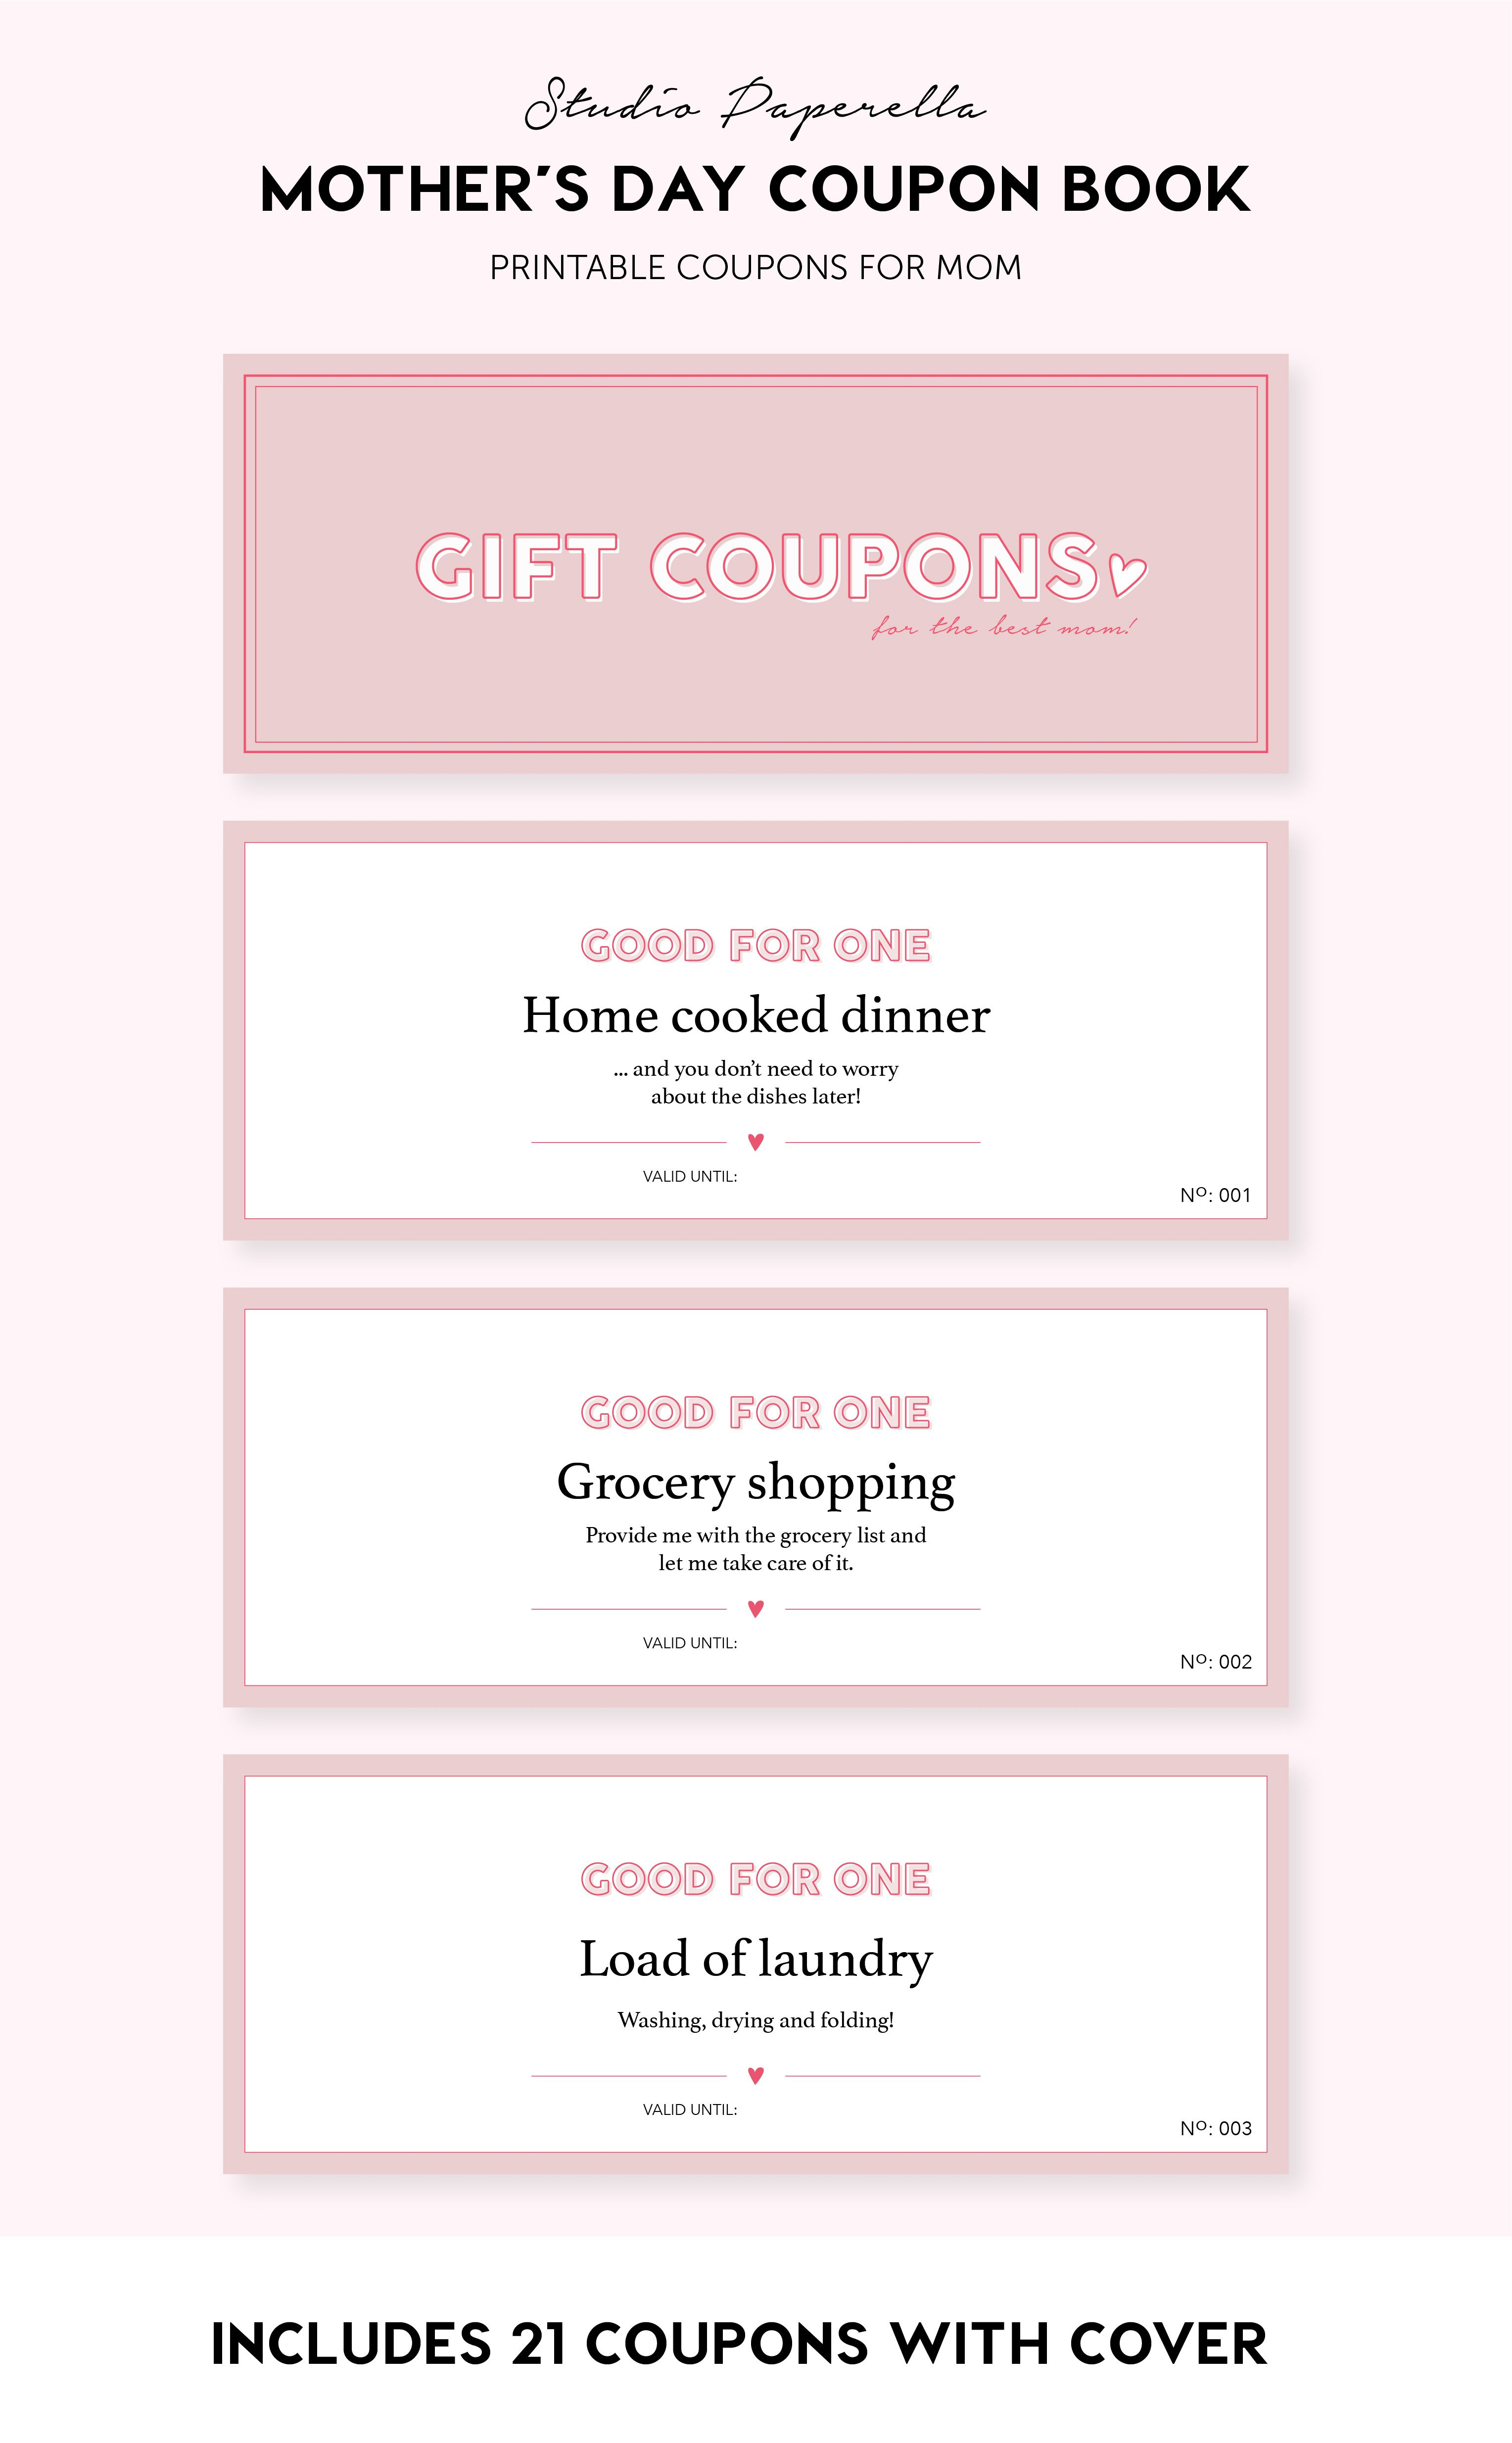 Printable Gift Coupons For Mom Last Minute Gift Diy Printable Gift Coupon Book Mom Gift Mother S Day Gift For Mum Coupon Book Mother S Day Coupons Printable Coupon Book